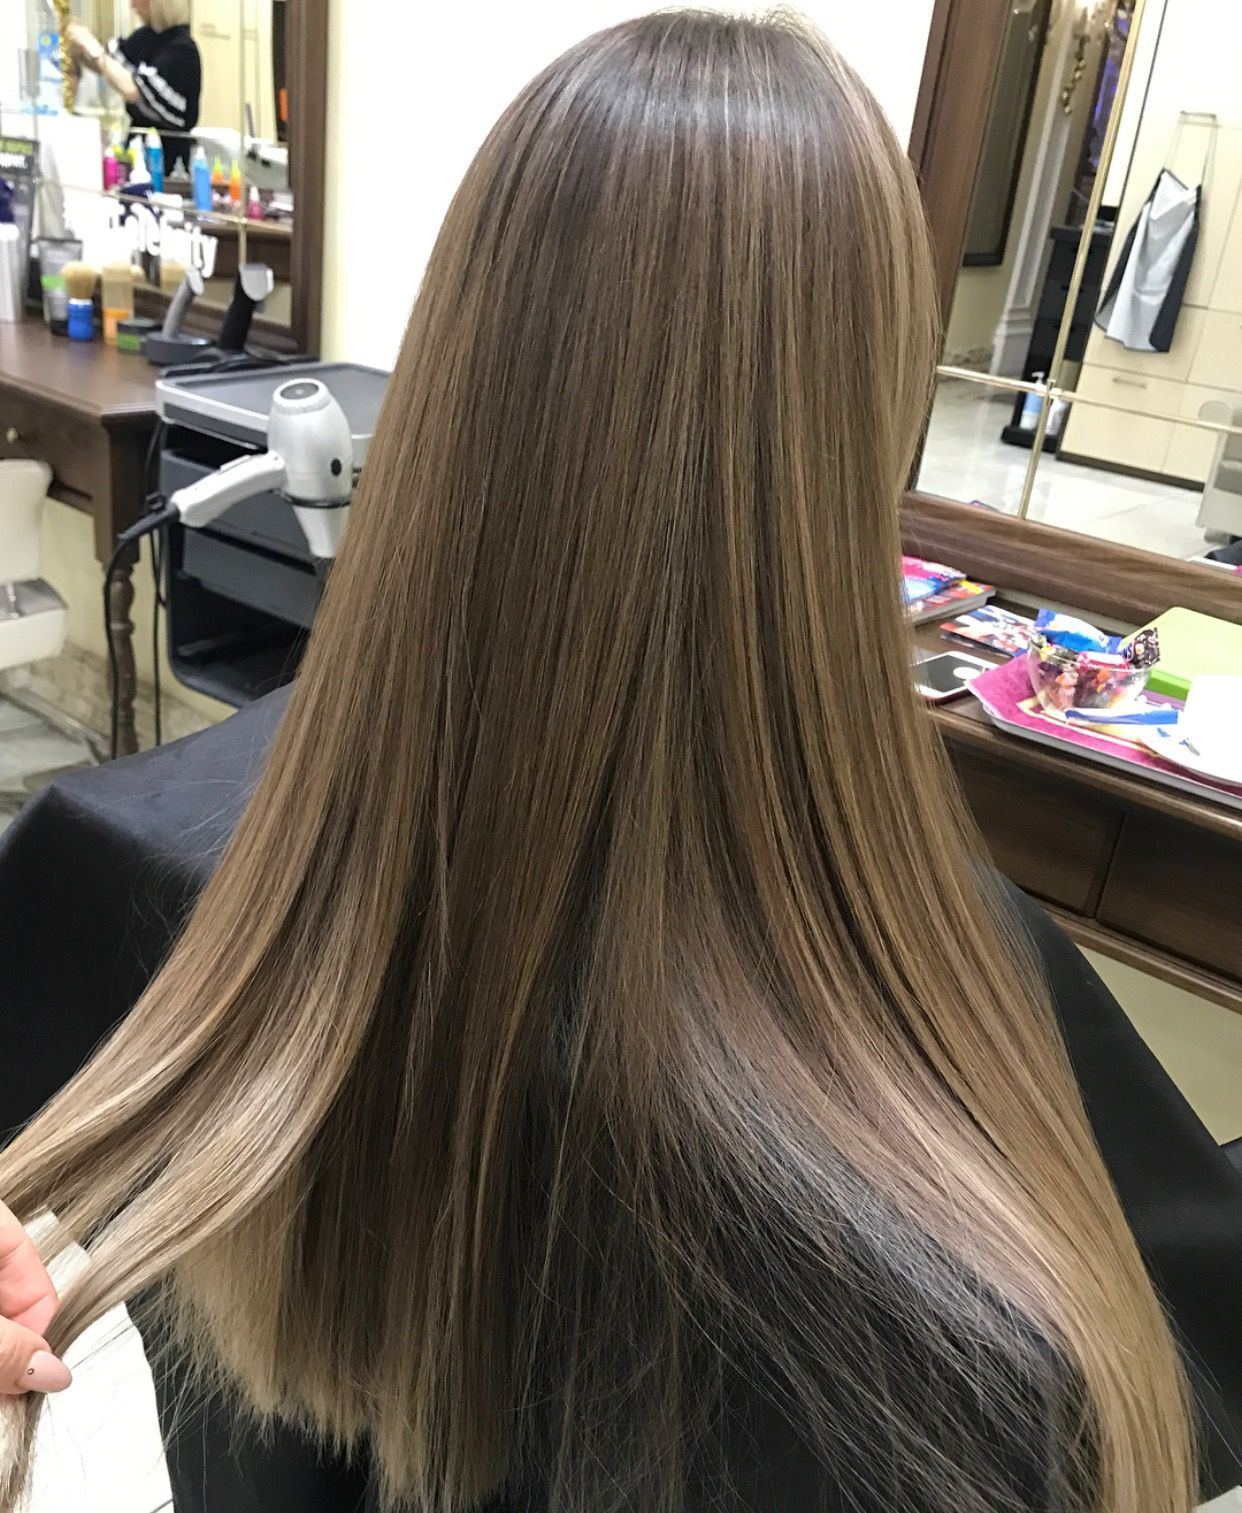 6454826ecc27 From uneven brassy color to light smokey ash brown. No bleach was used.